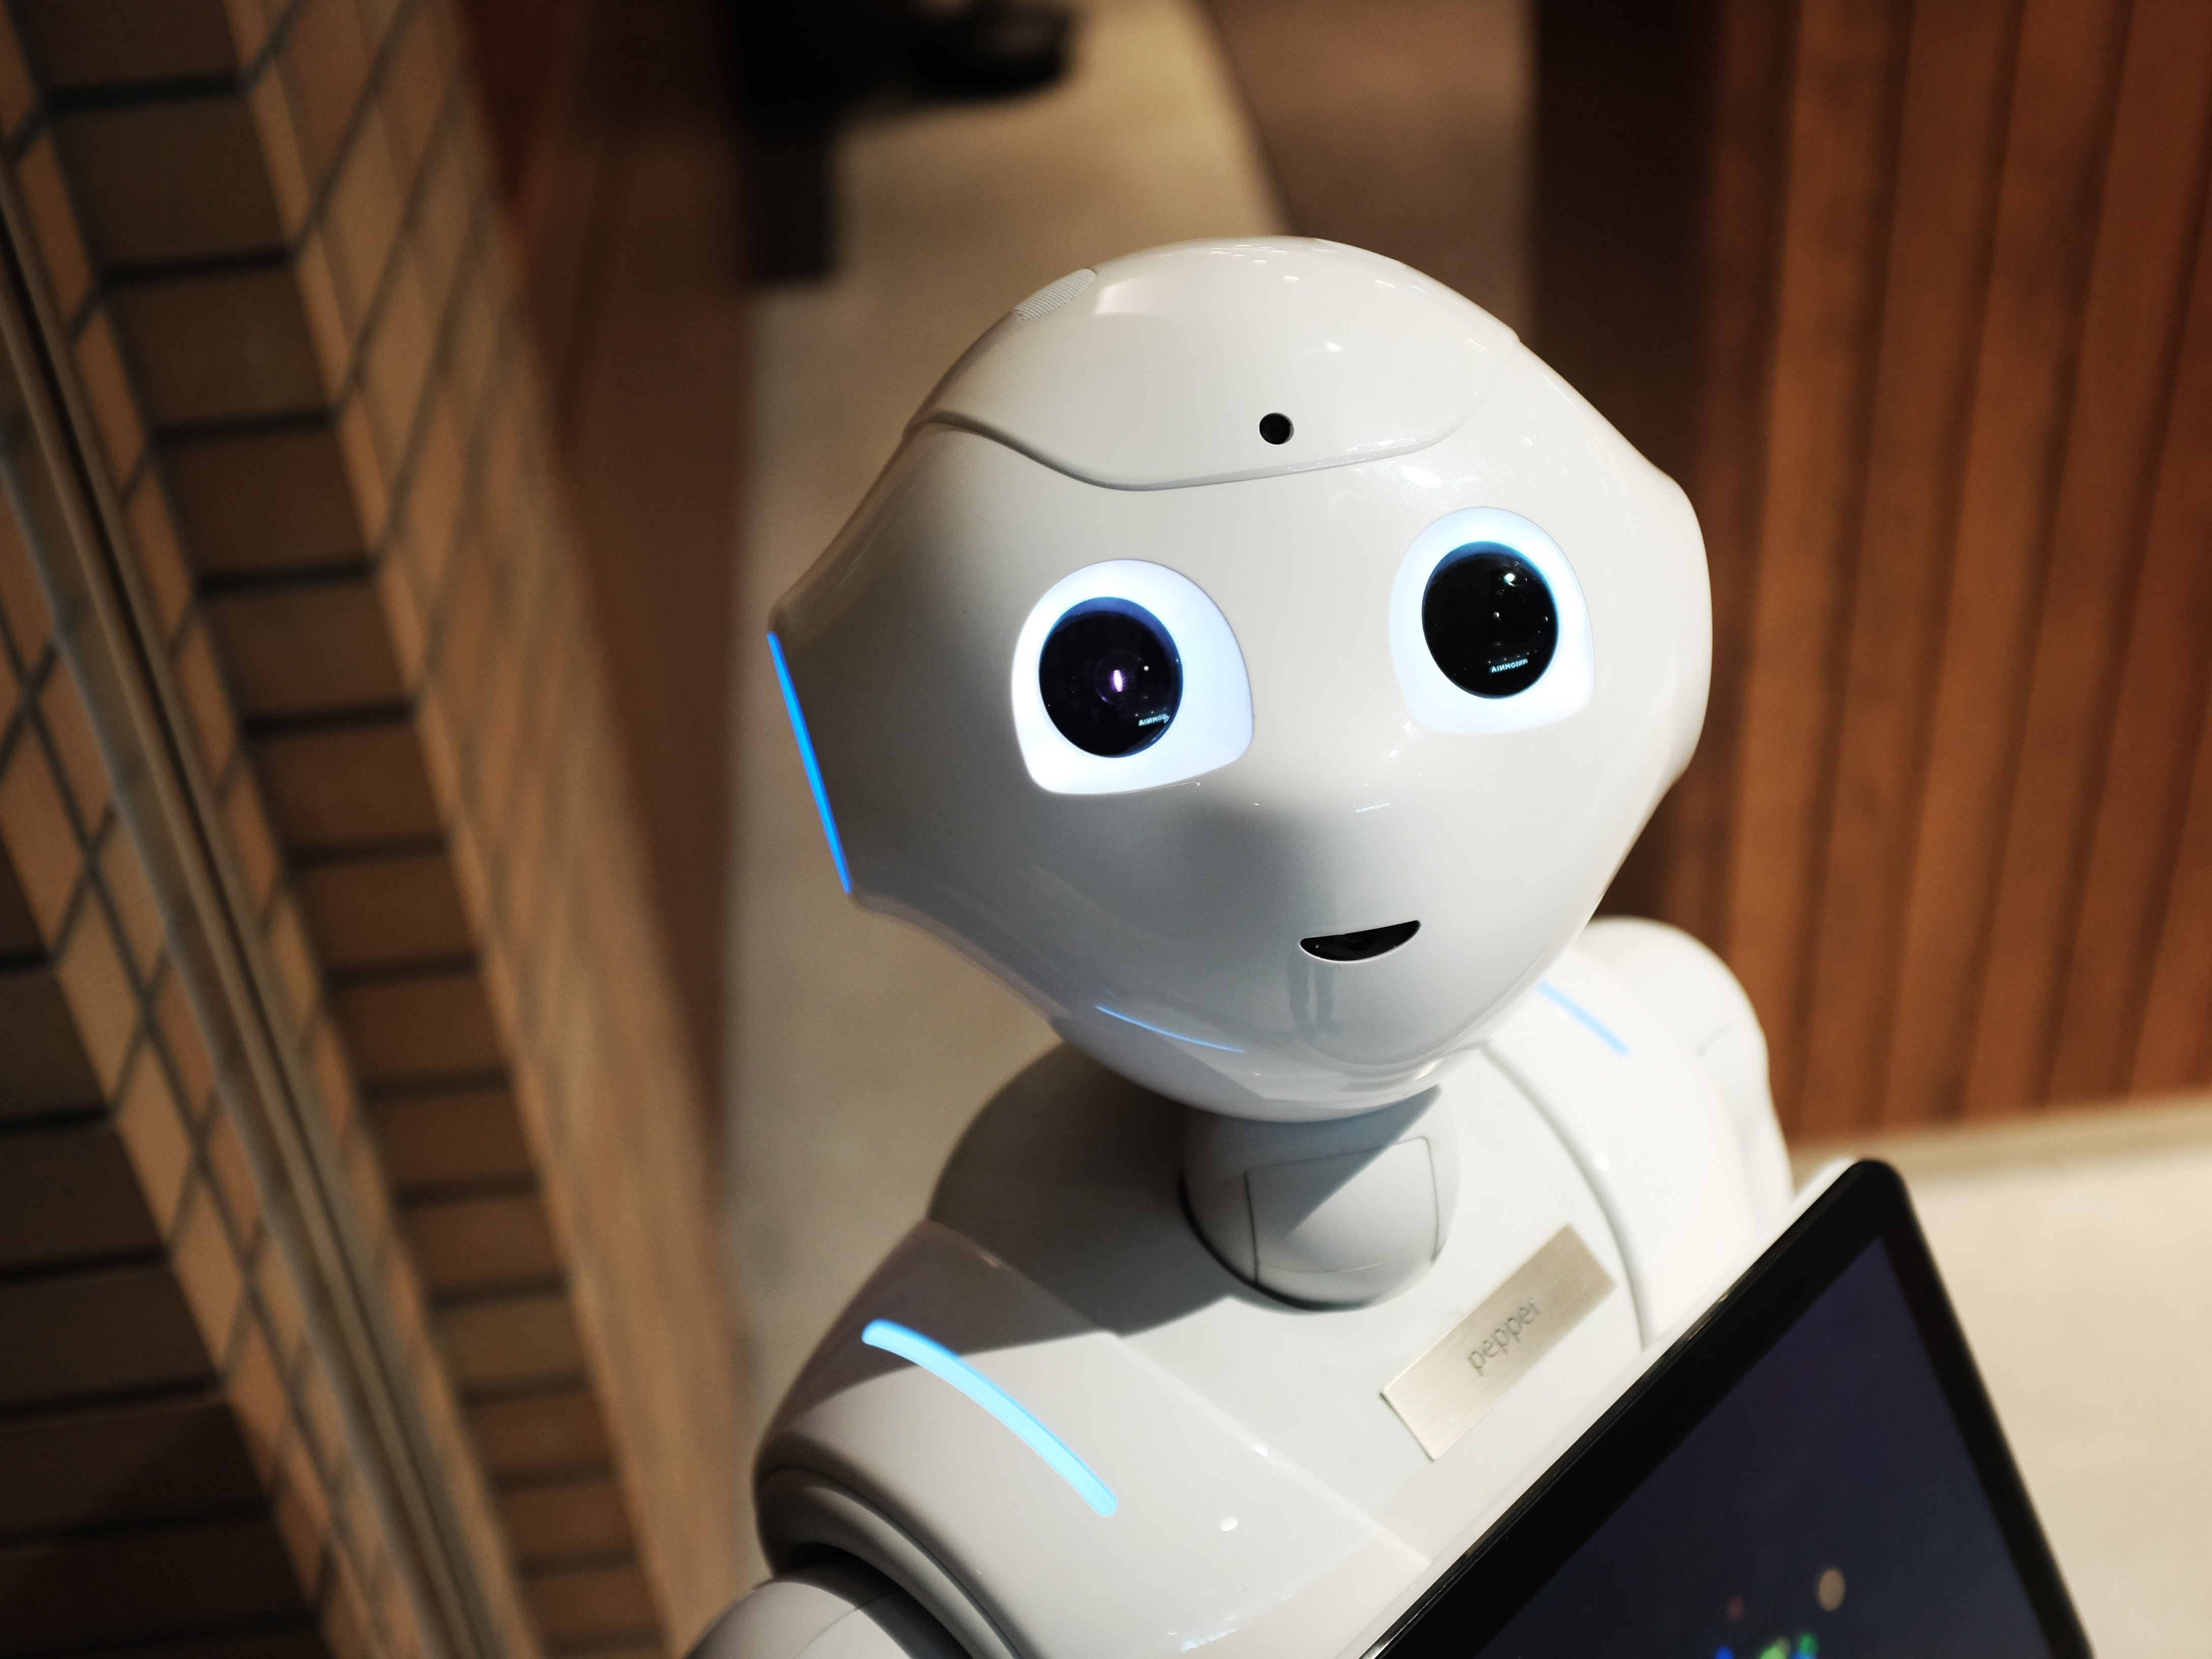 A robot with human feature. Image credit: Unsplash.